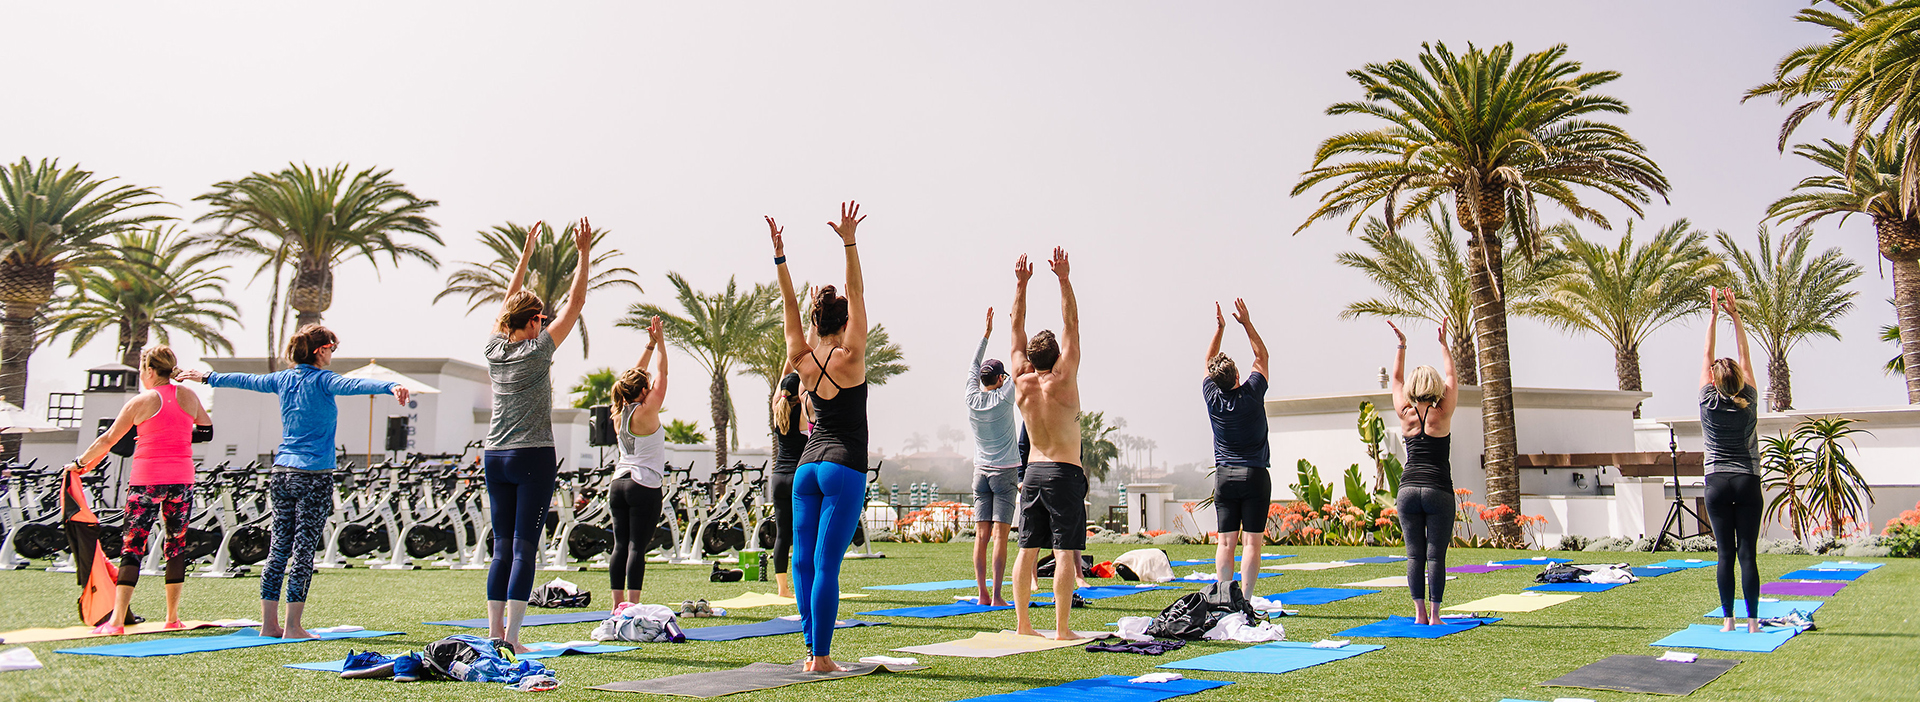 KAISER PERMANENTE THRIVE YOGA BY THE SEA